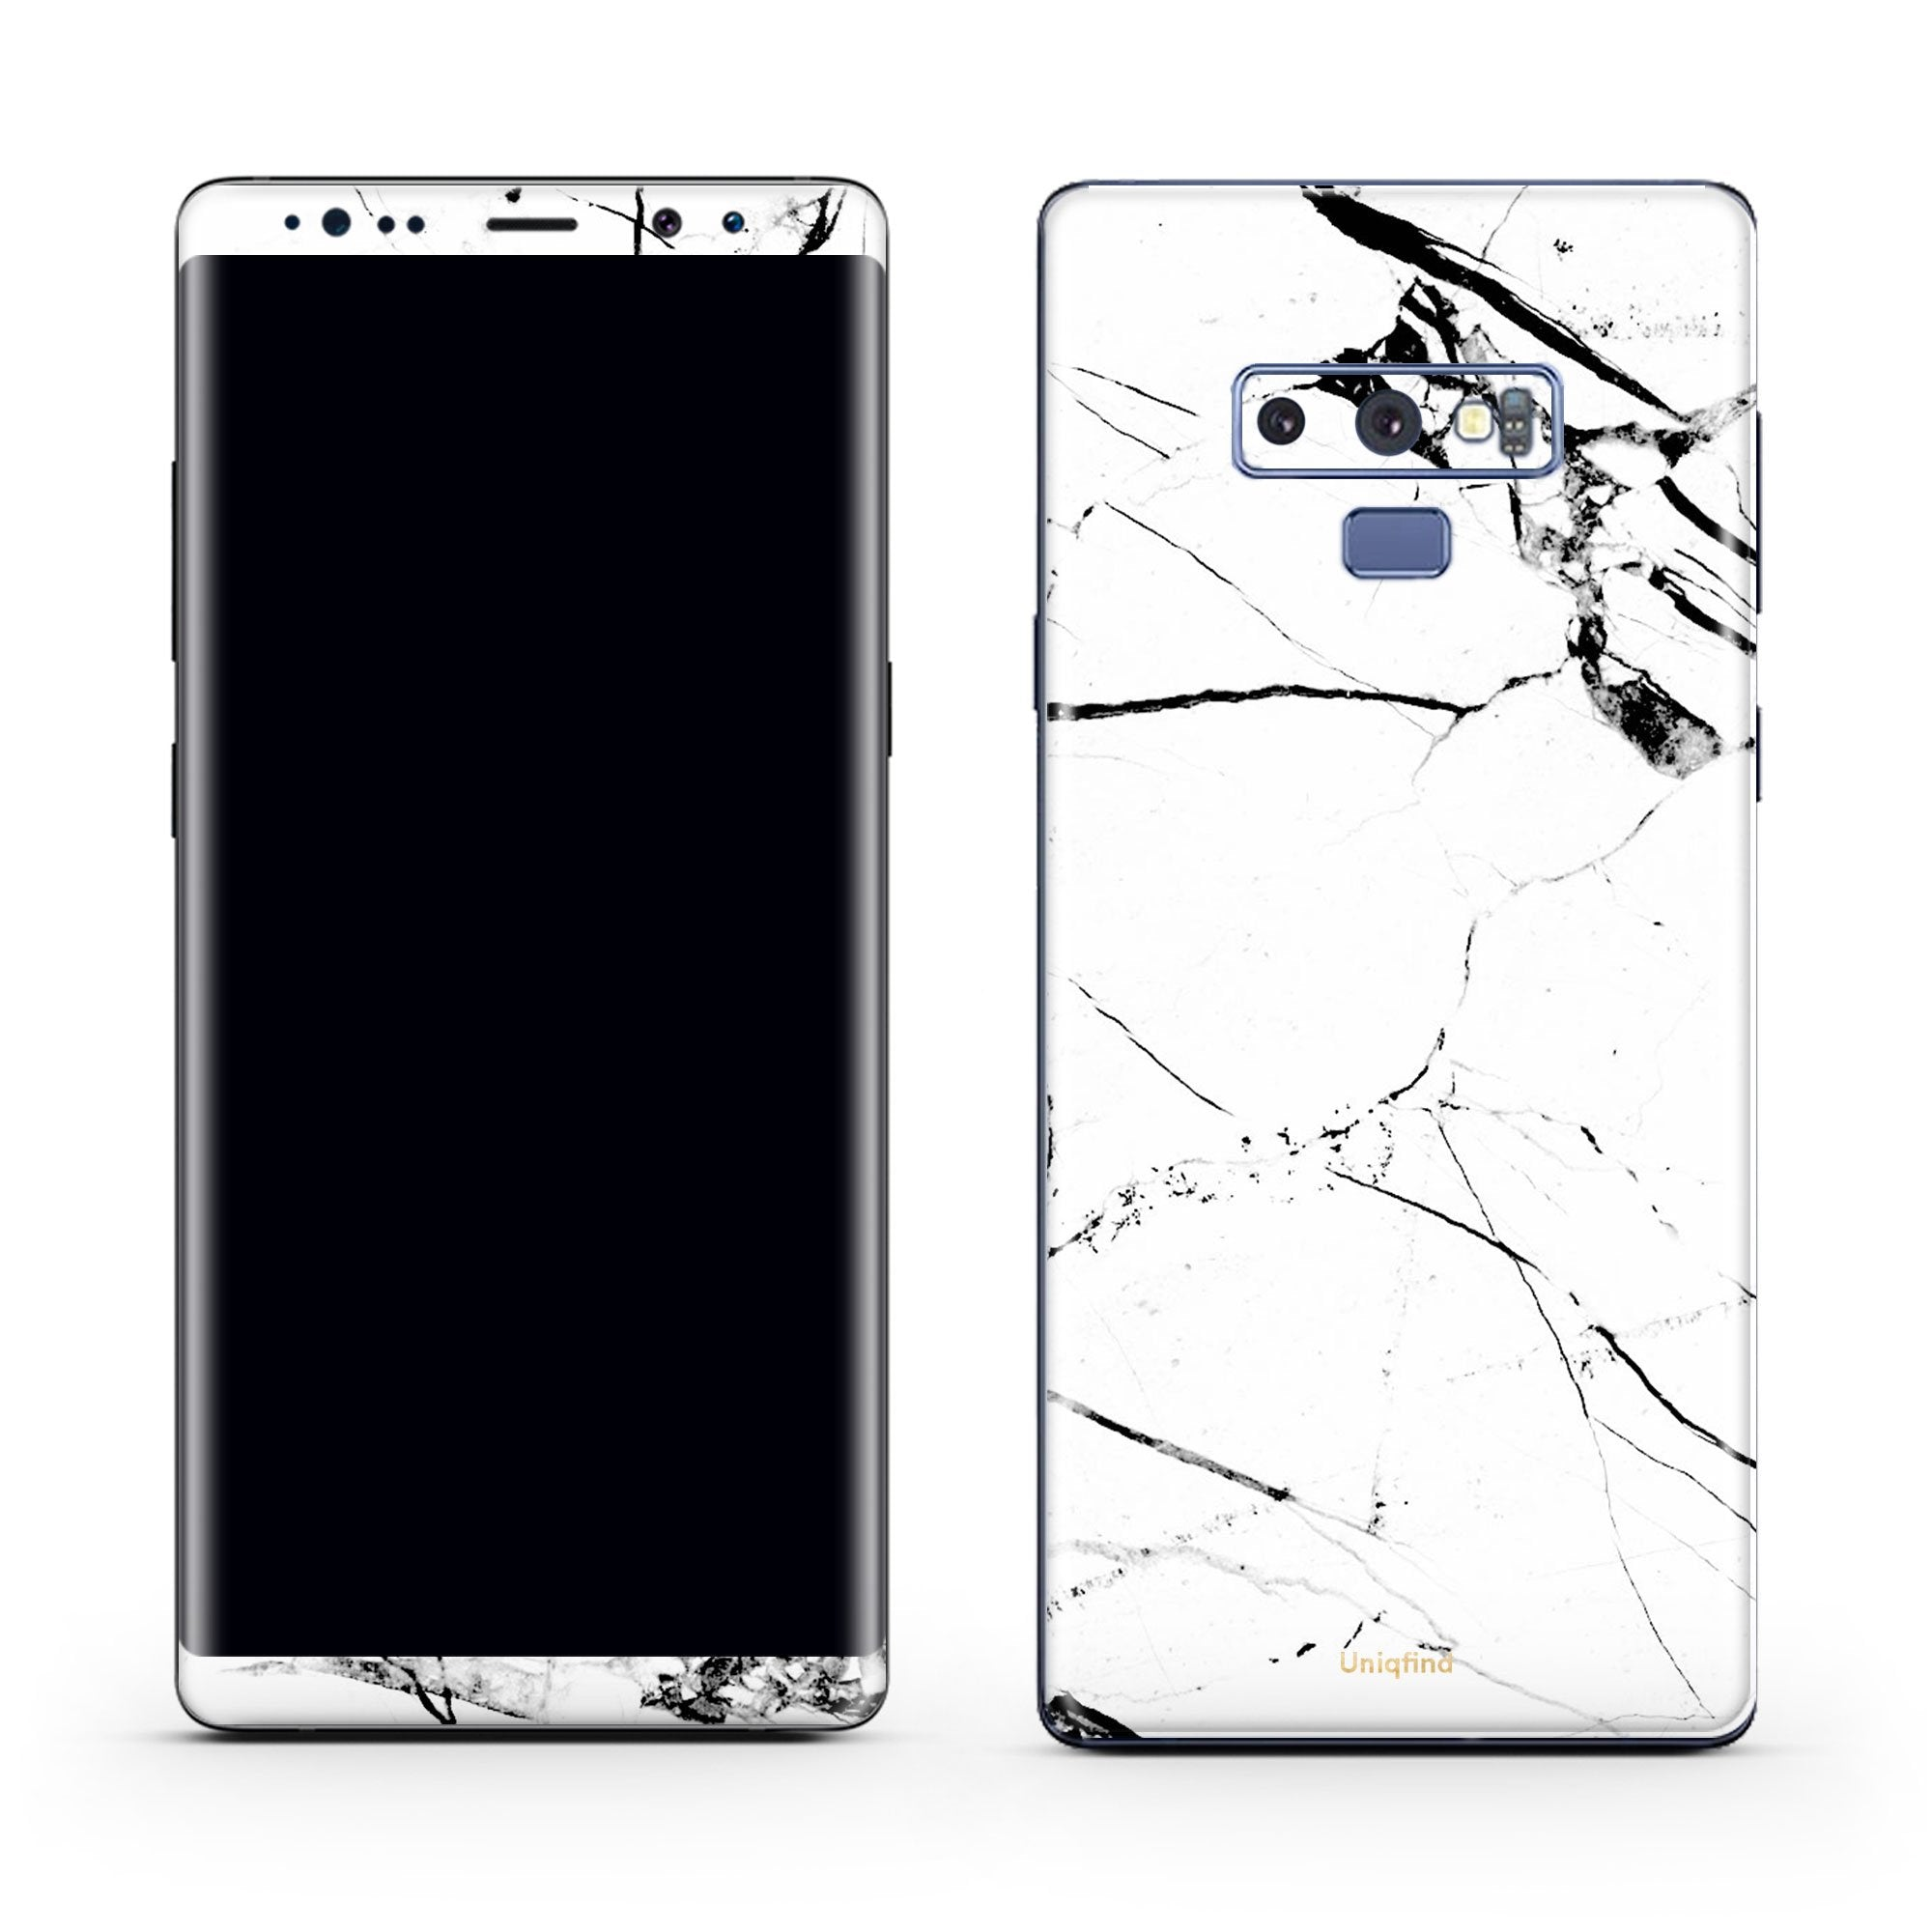 White Hyper Marble Galaxy Note 9 Skin + Case